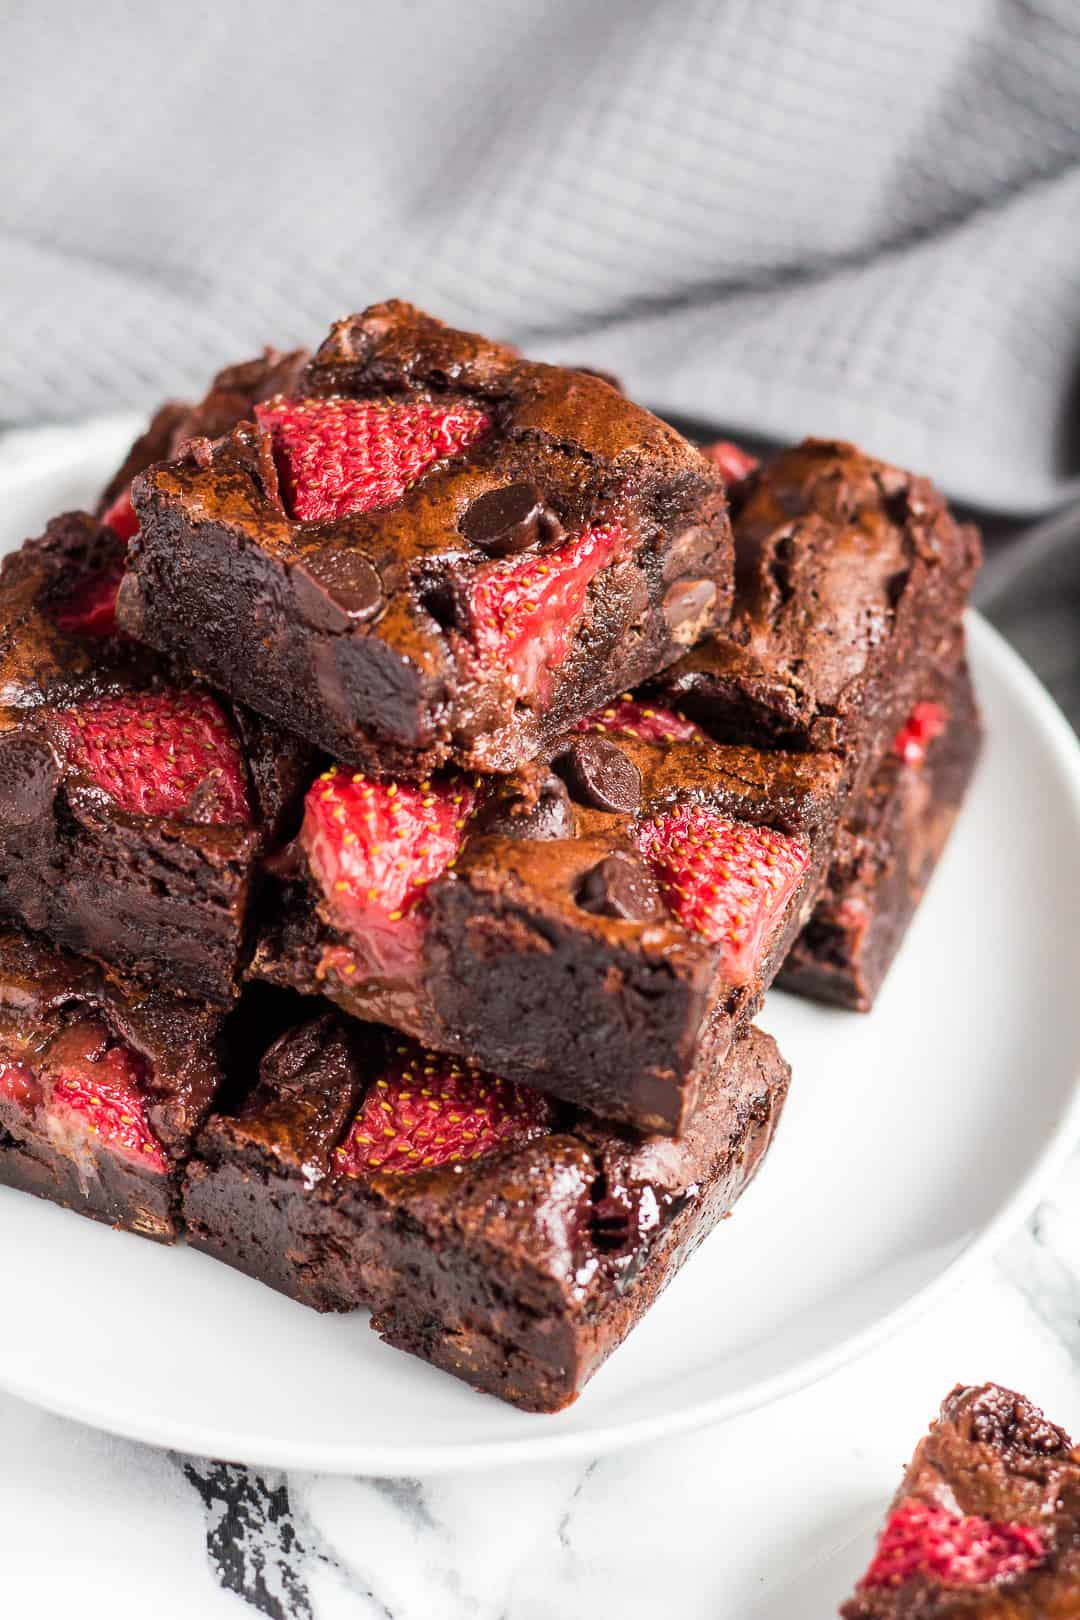 Strawberry mint brownies piled on top of each other on a small white plate.